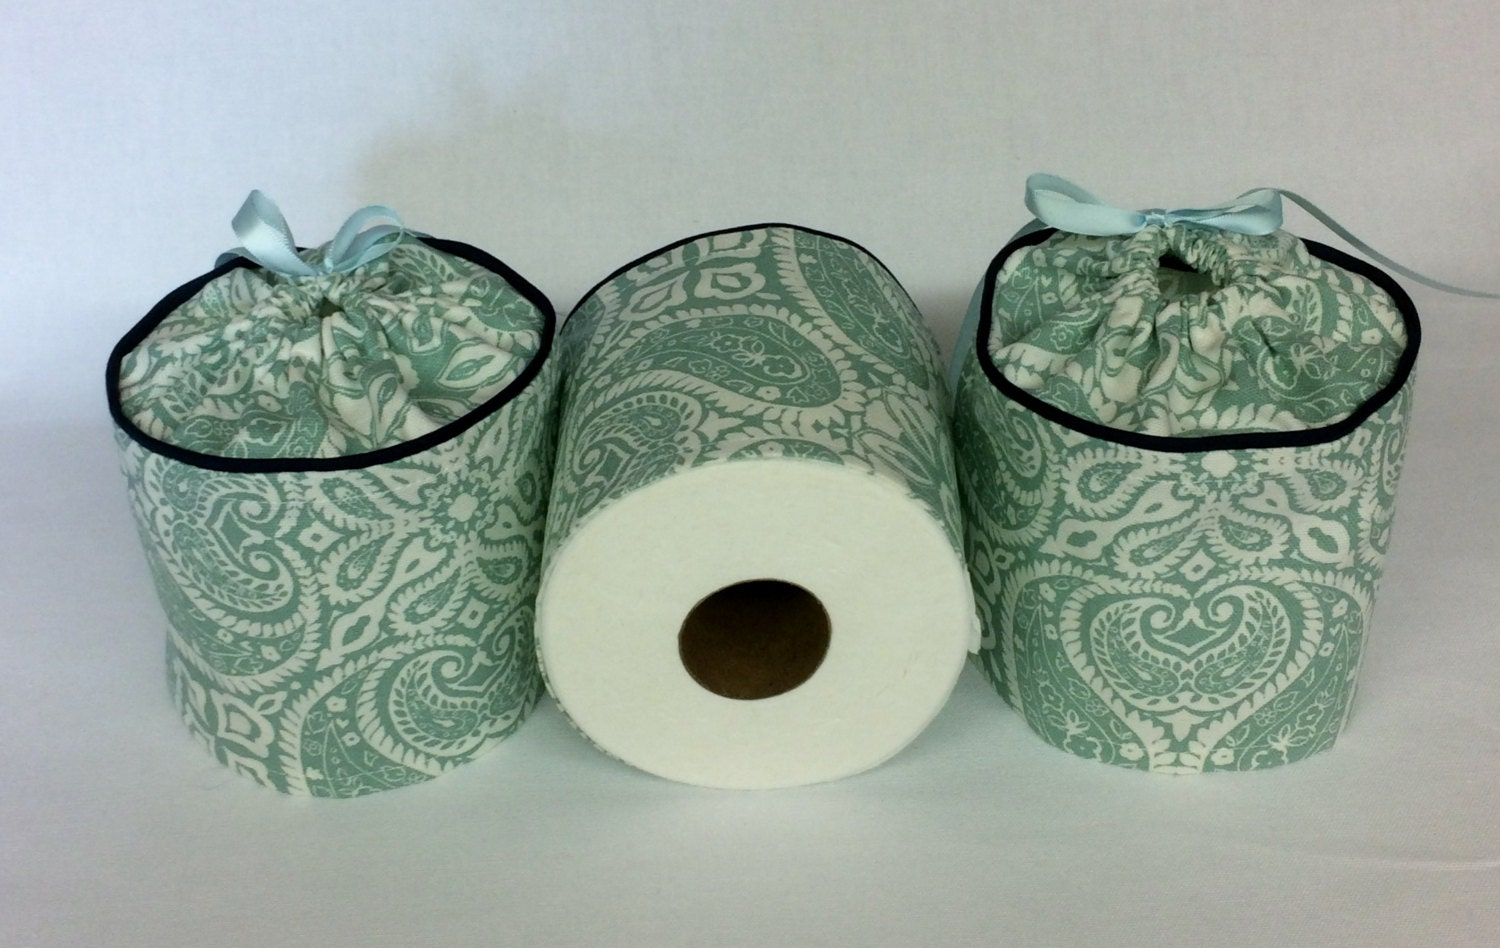 Toilet Roll Storage Holder, Bathroom Decor Bathroom Storage, Toilet Paper  Holder Storage, Toilet Paper Storage, Toilet Paper Accessories,